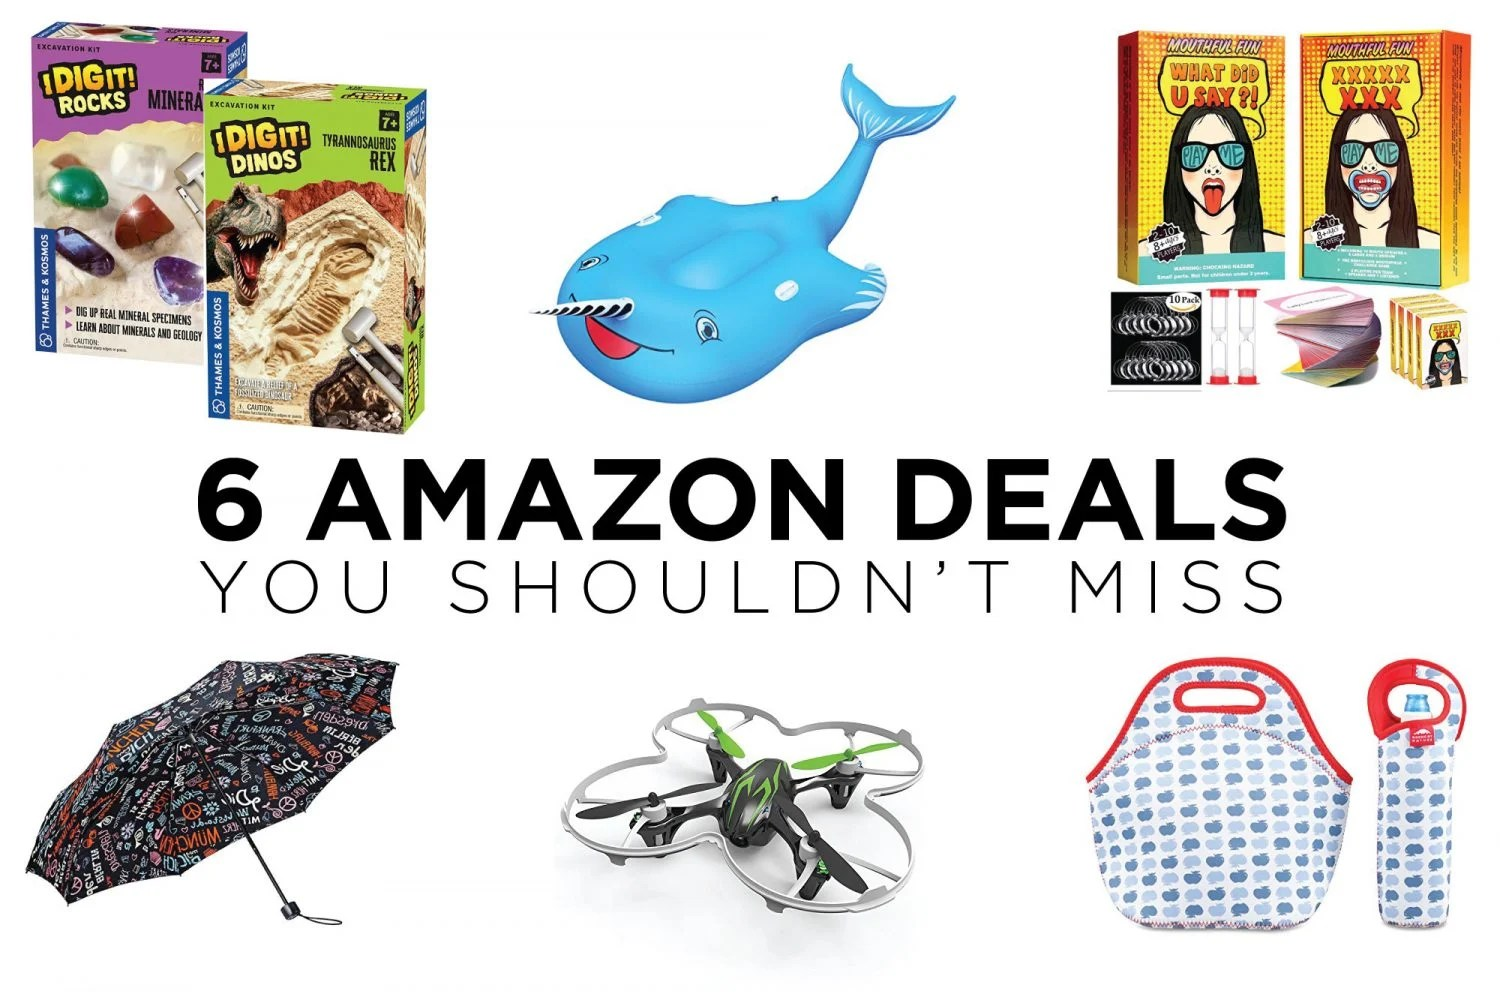 amazon deals best amazon deals kids gifts family friendly gifts birthday gifts